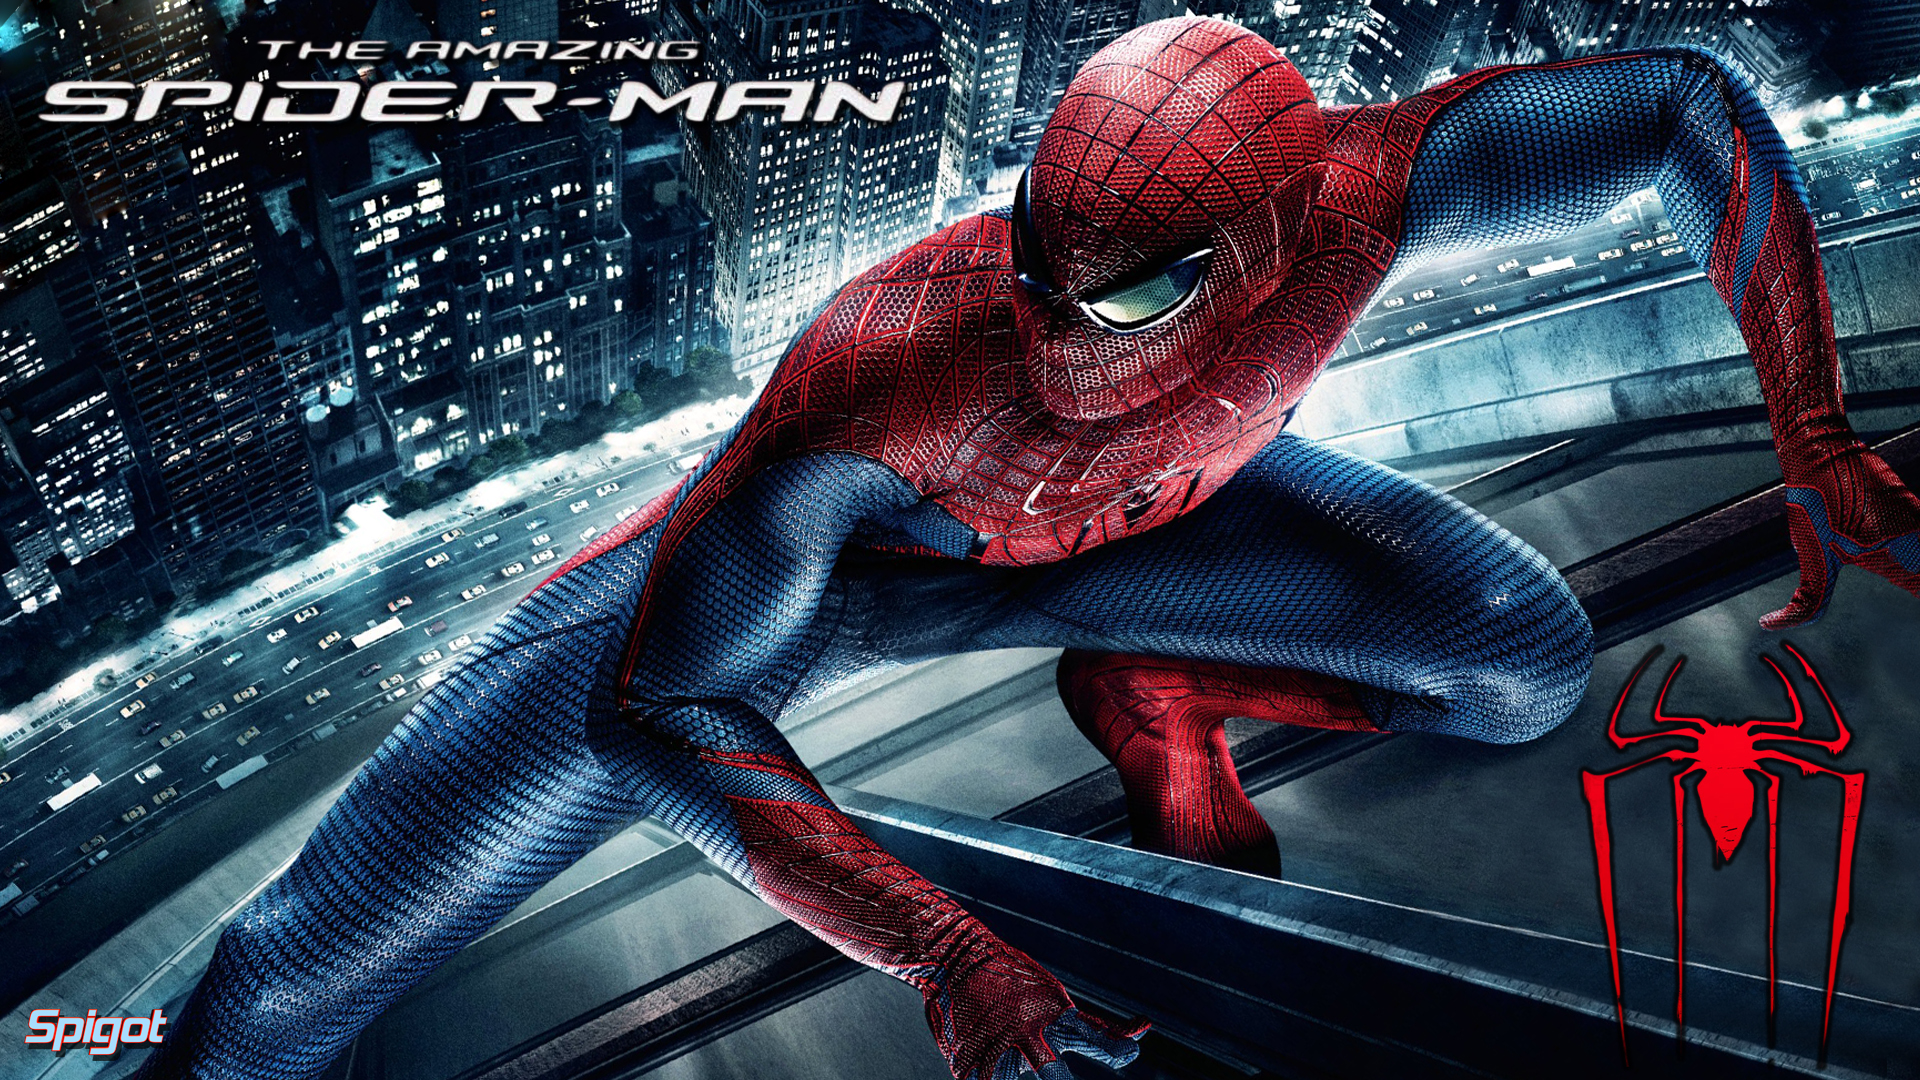 More Amazing Spider Man Wallpapers George Spigots Blog 1920x1080